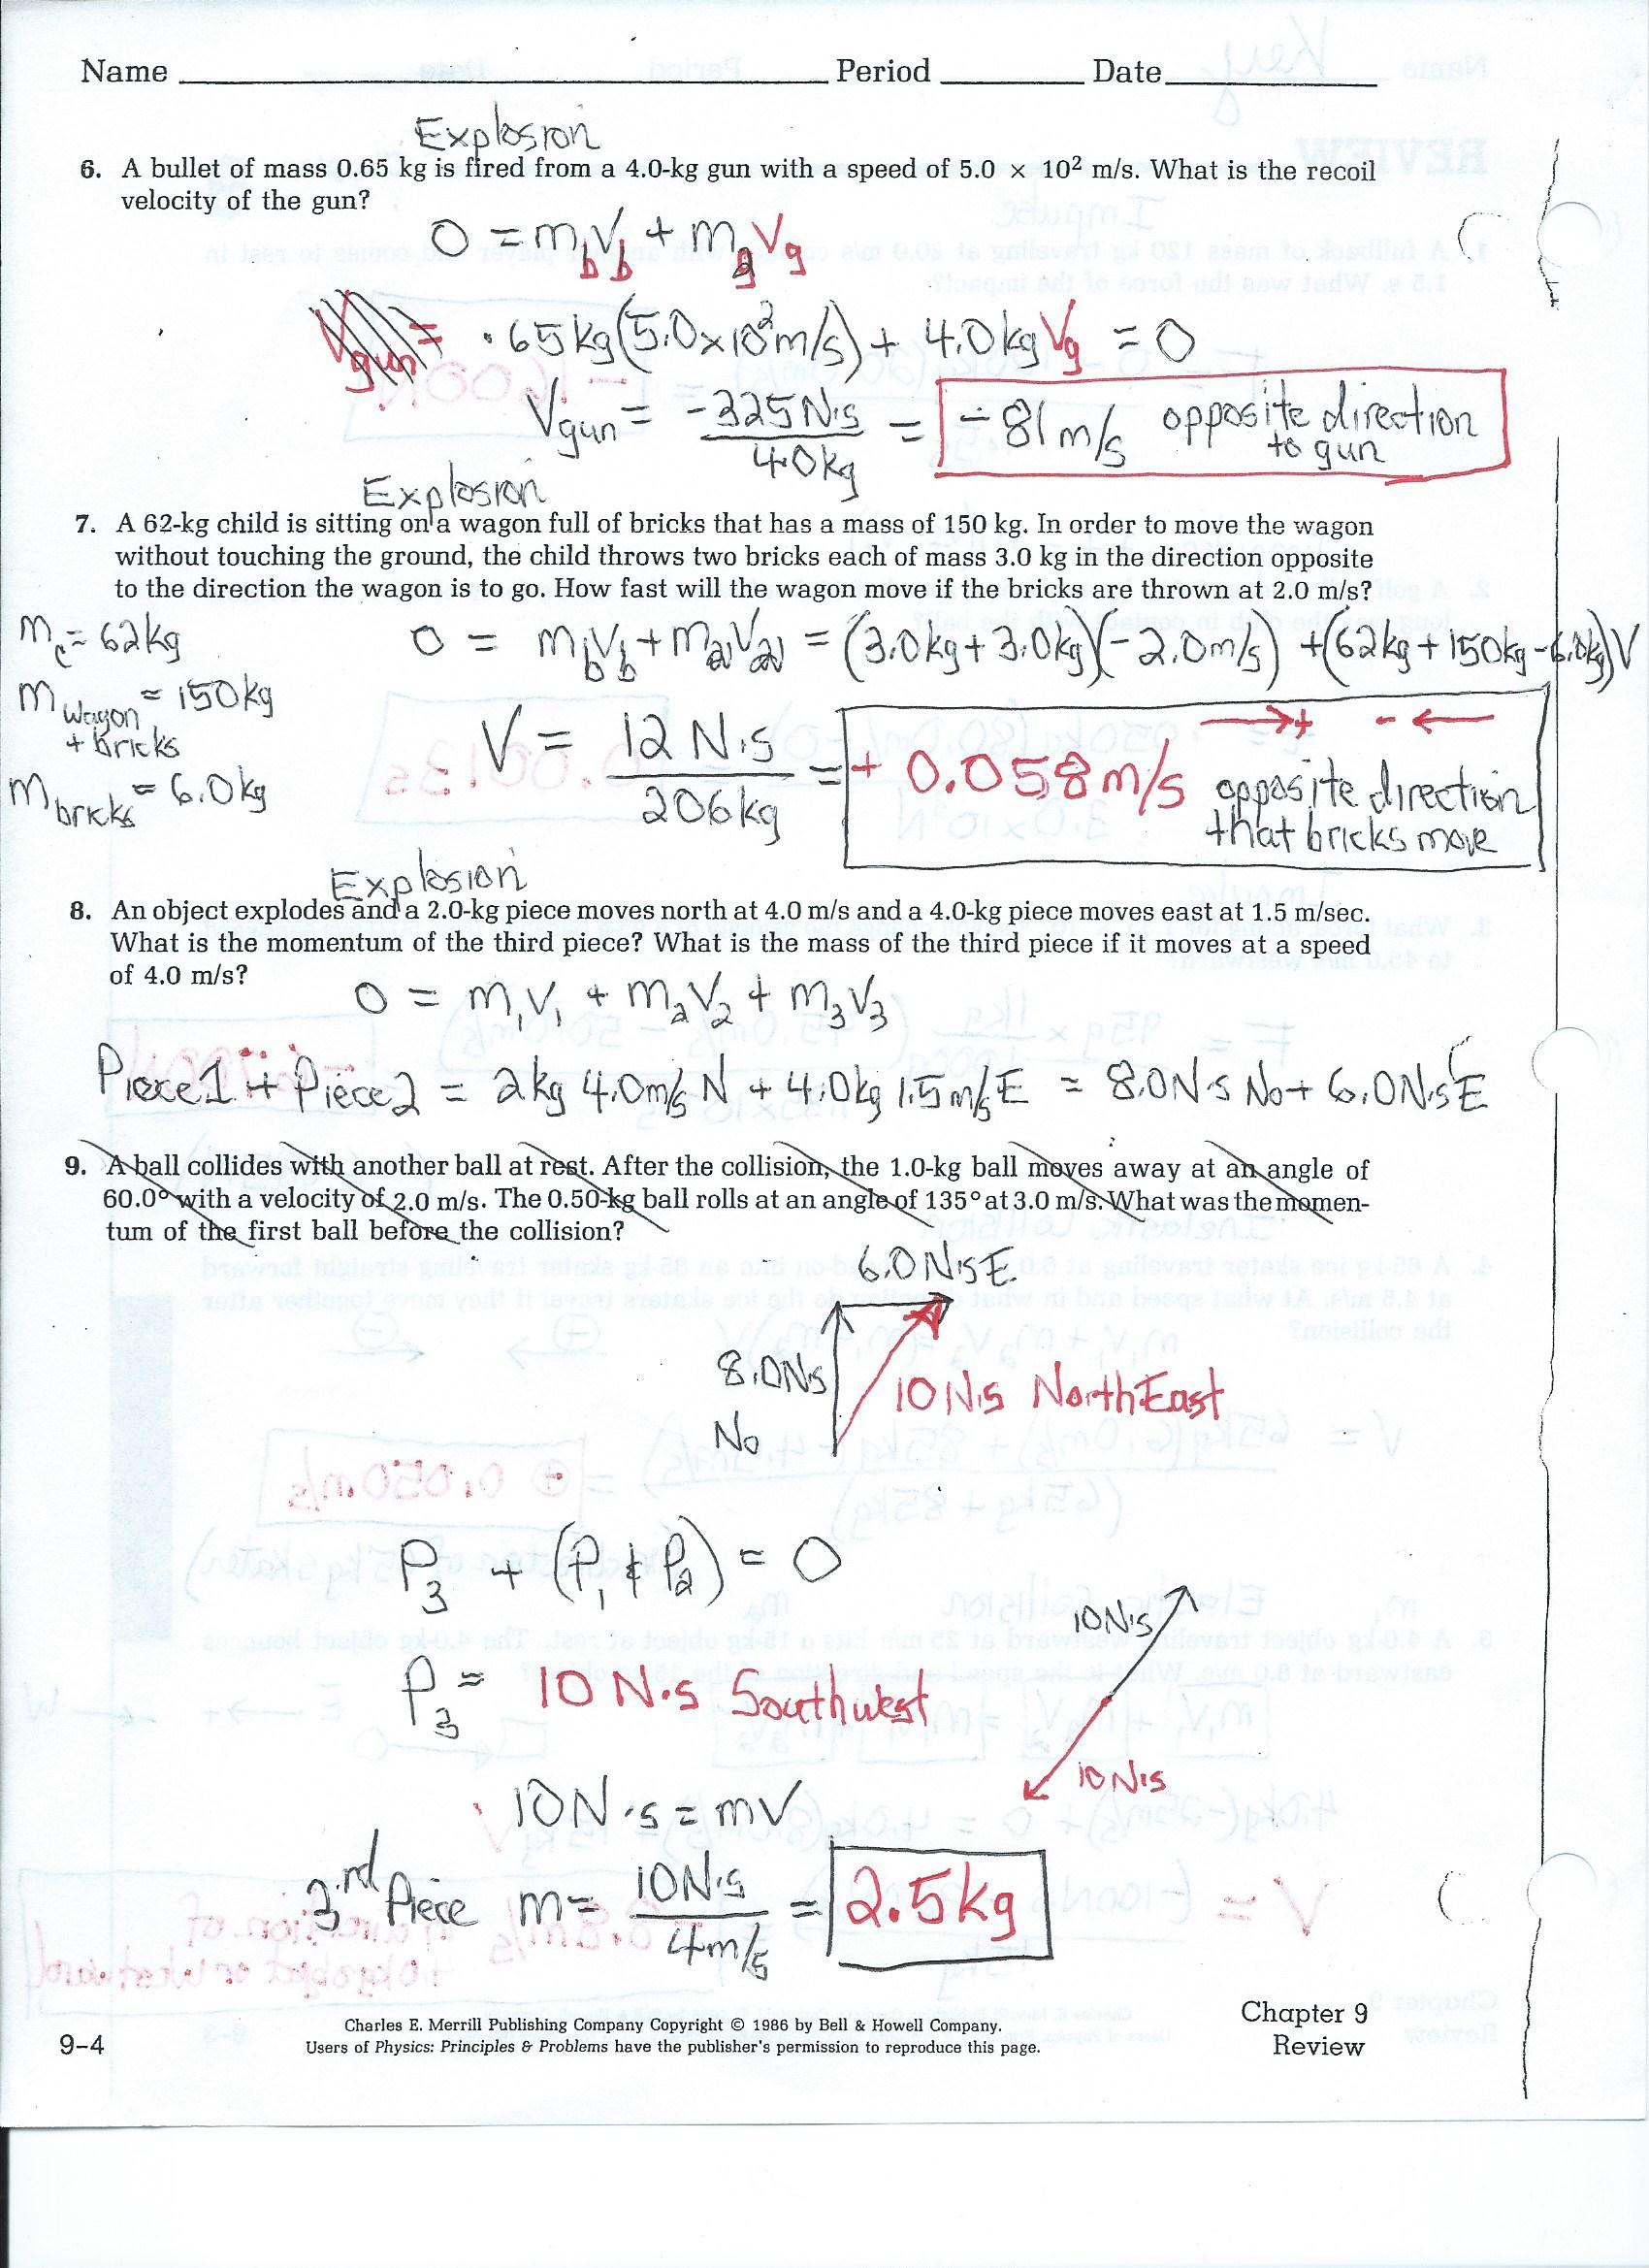 worksheet Conceptual Physics Worksheets south pasadena high school chp 7 review worksheet answers page 2 jpg